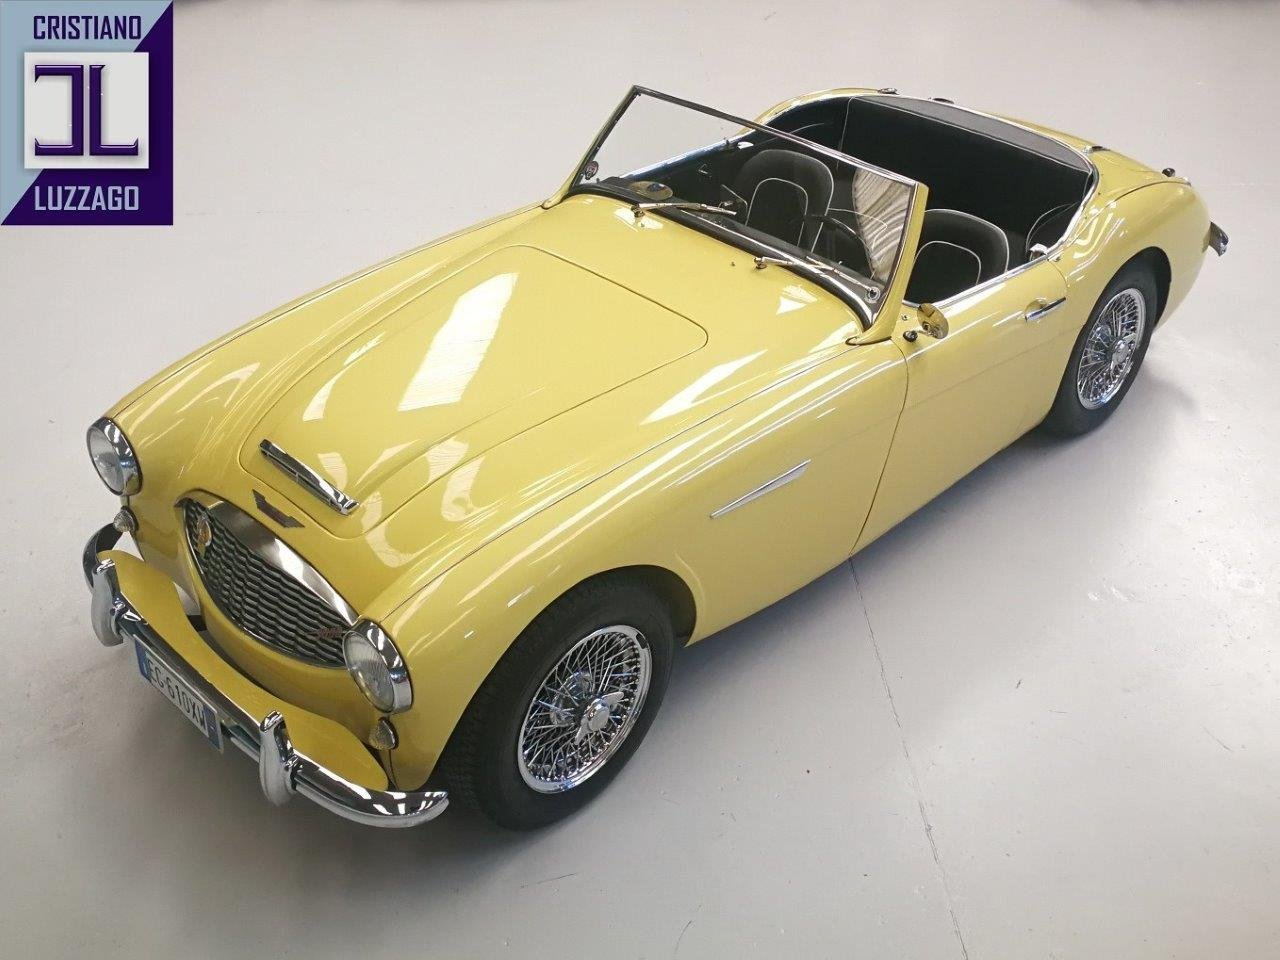 1960 AUSTIN HEALEY 3000 MK1 4 SEATER For Sale (picture 1 of 6)